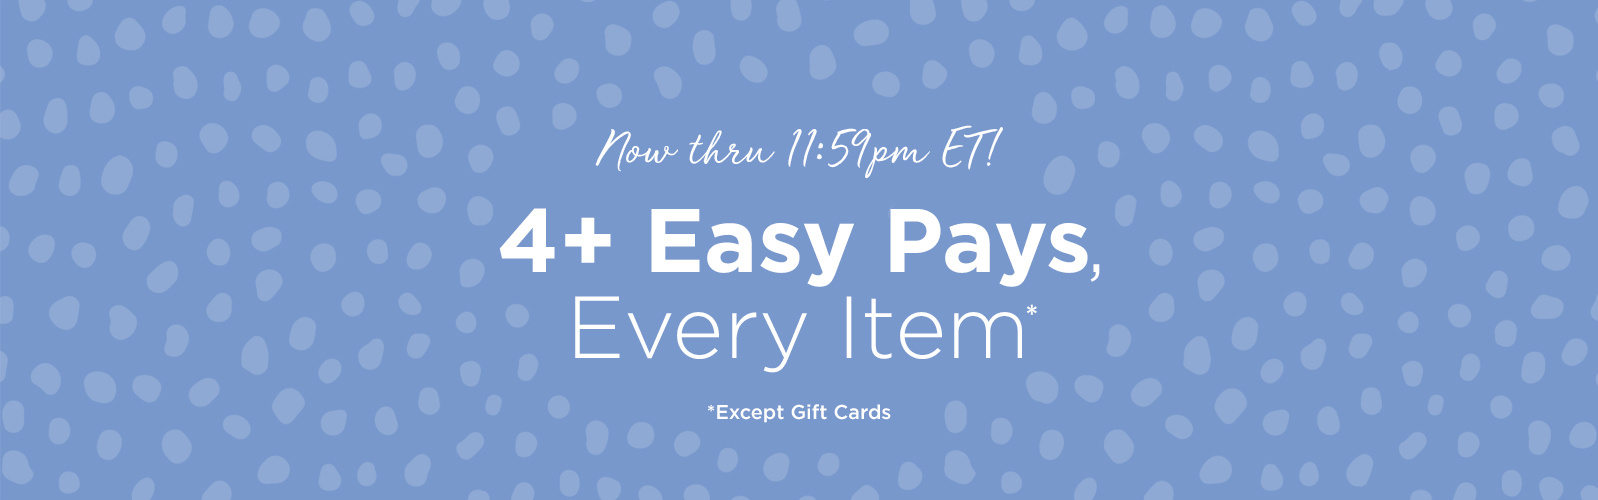 Now thru 11:59pm ET! 4+ Easy Pays, Every Item Except Gift Cards